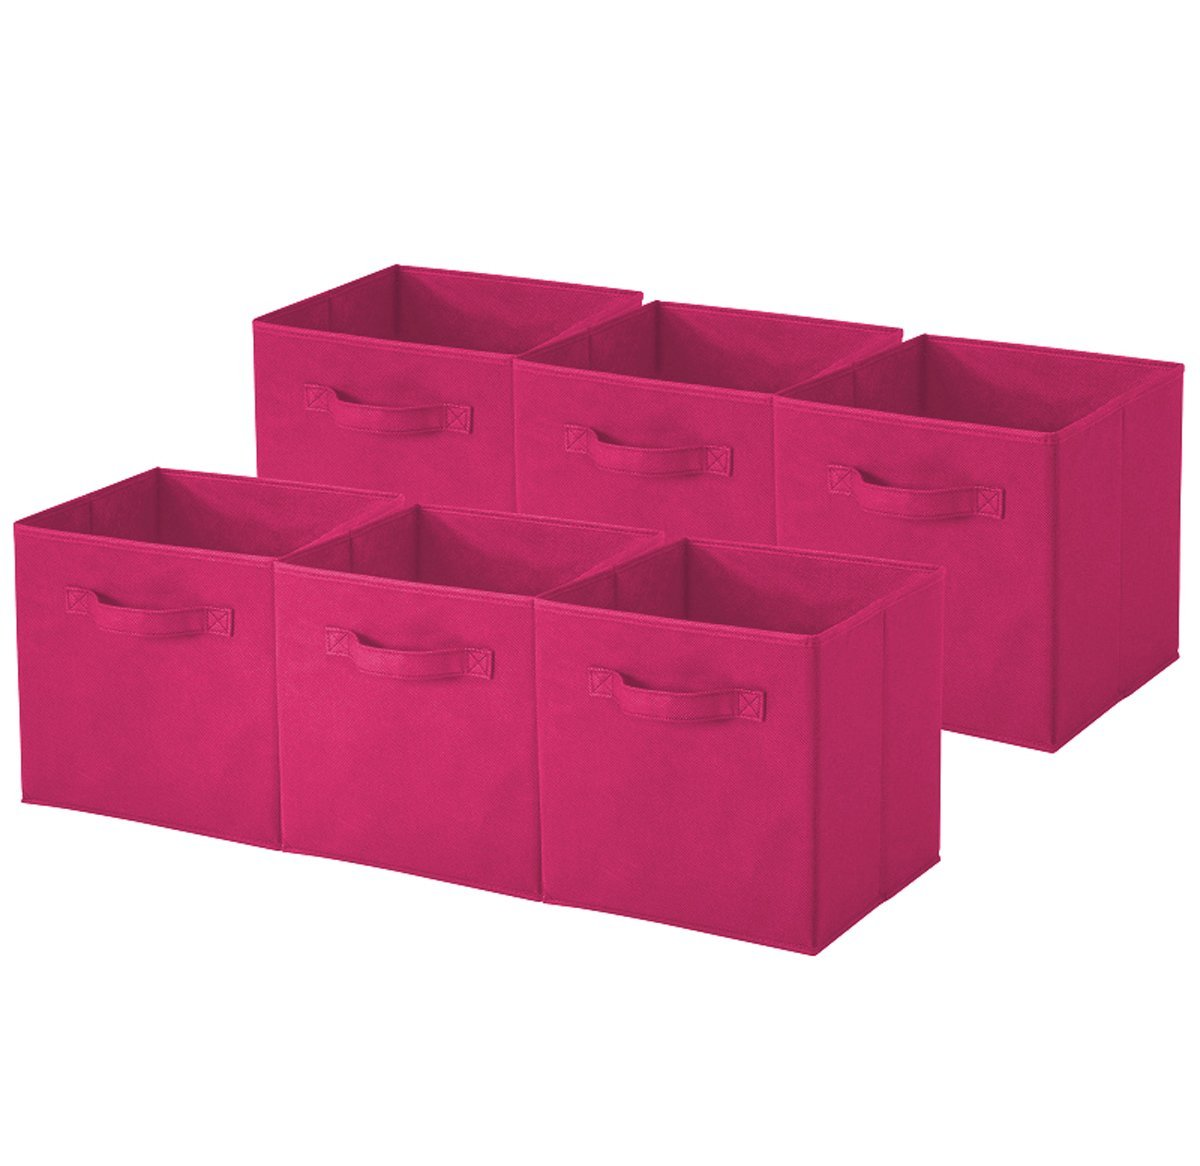 Sorbus Foldable Storage Cube Basket Bin Pink-6 PACK